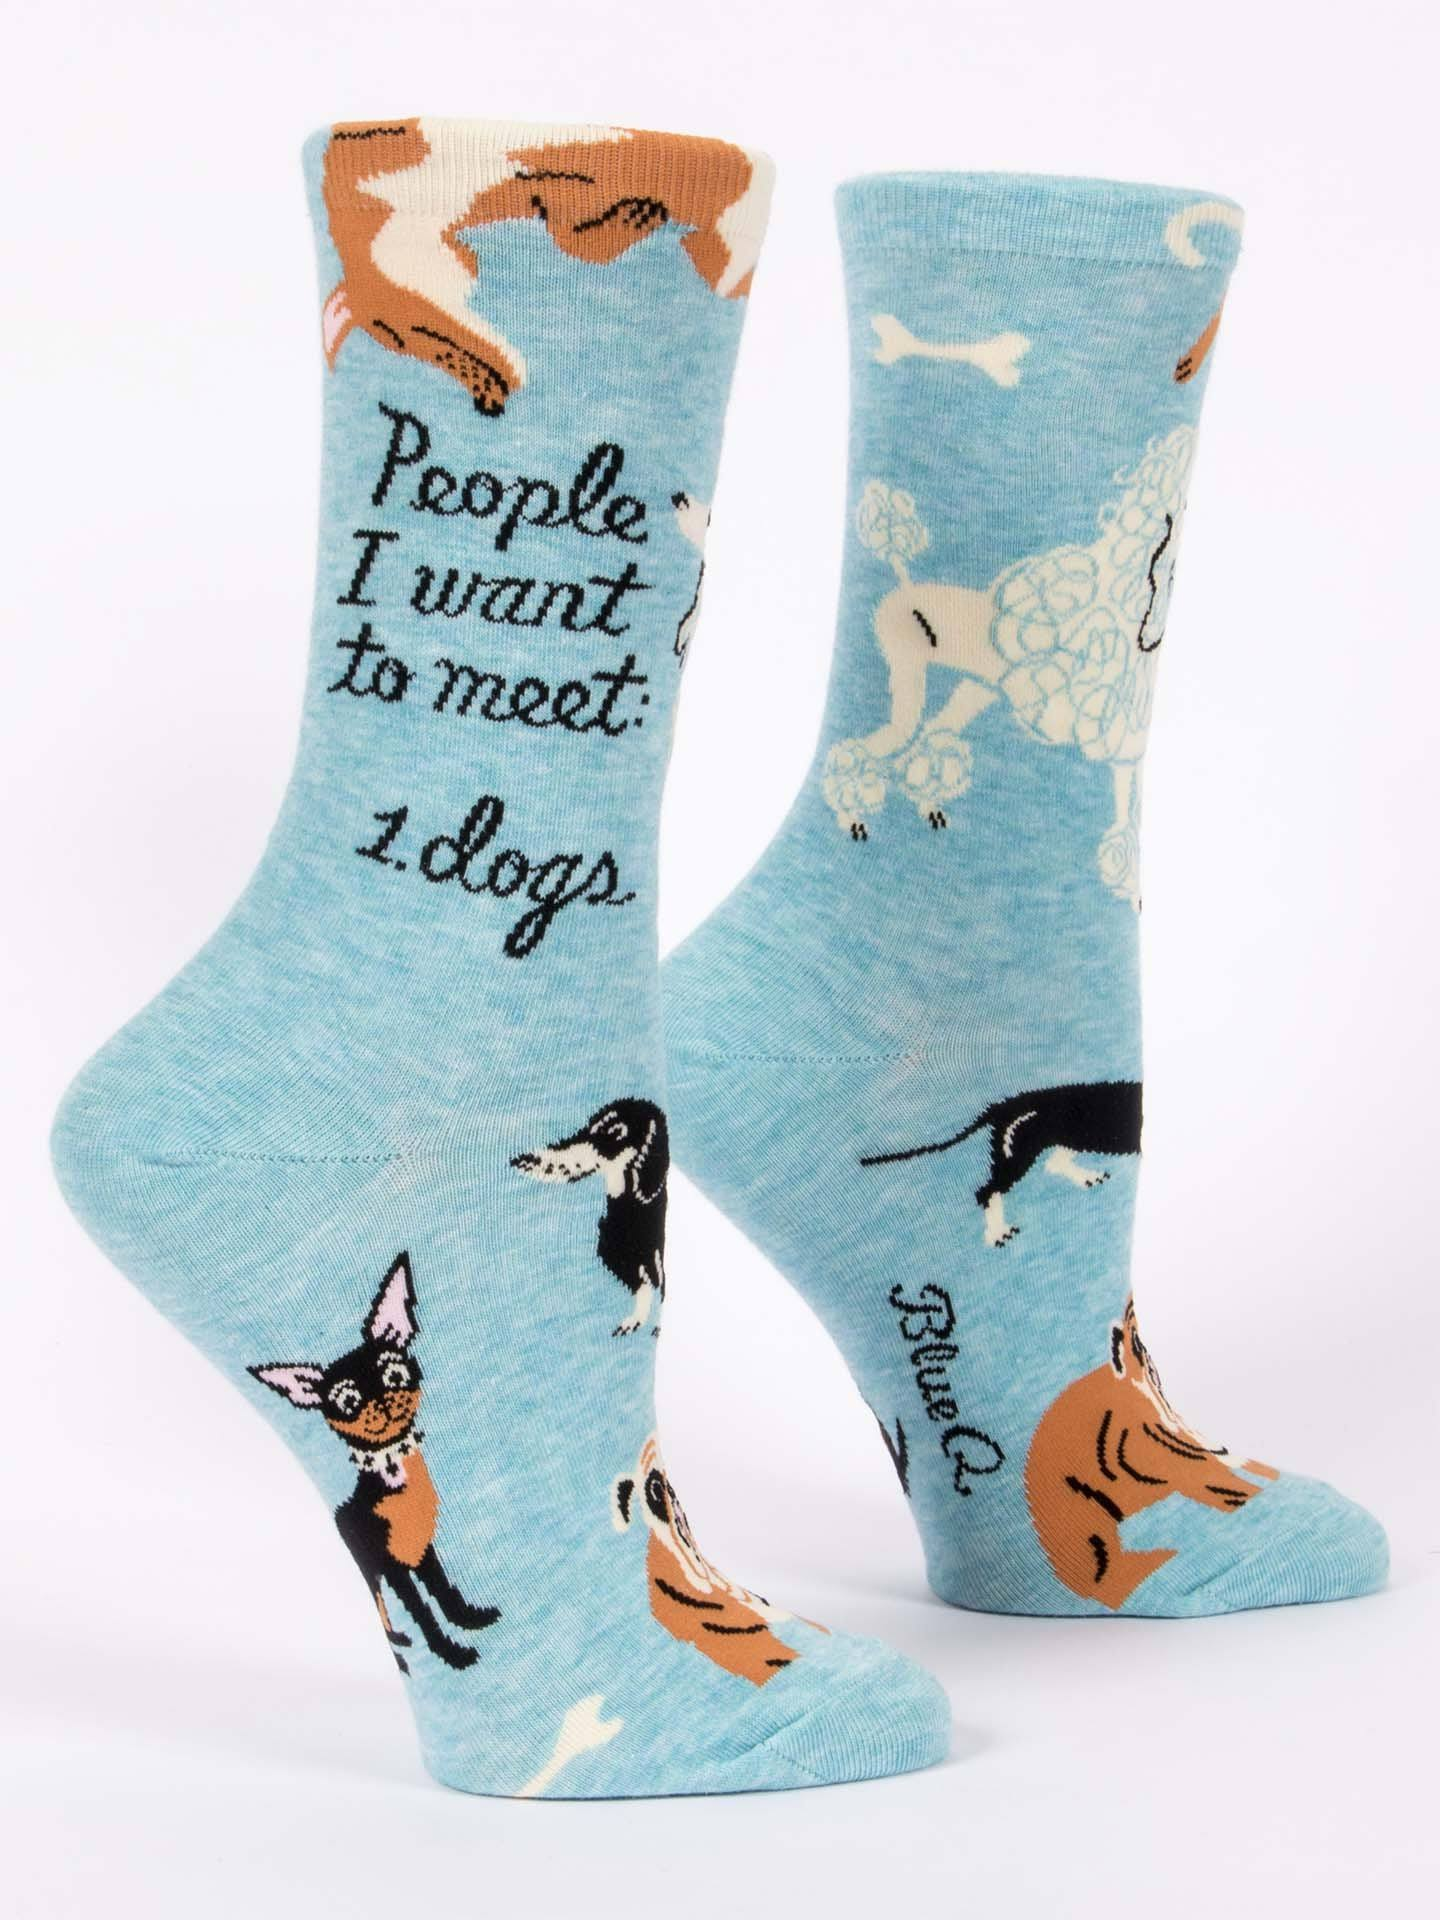 Blue Q - People I Want to Meet: Dogs Crew Socks | Women's